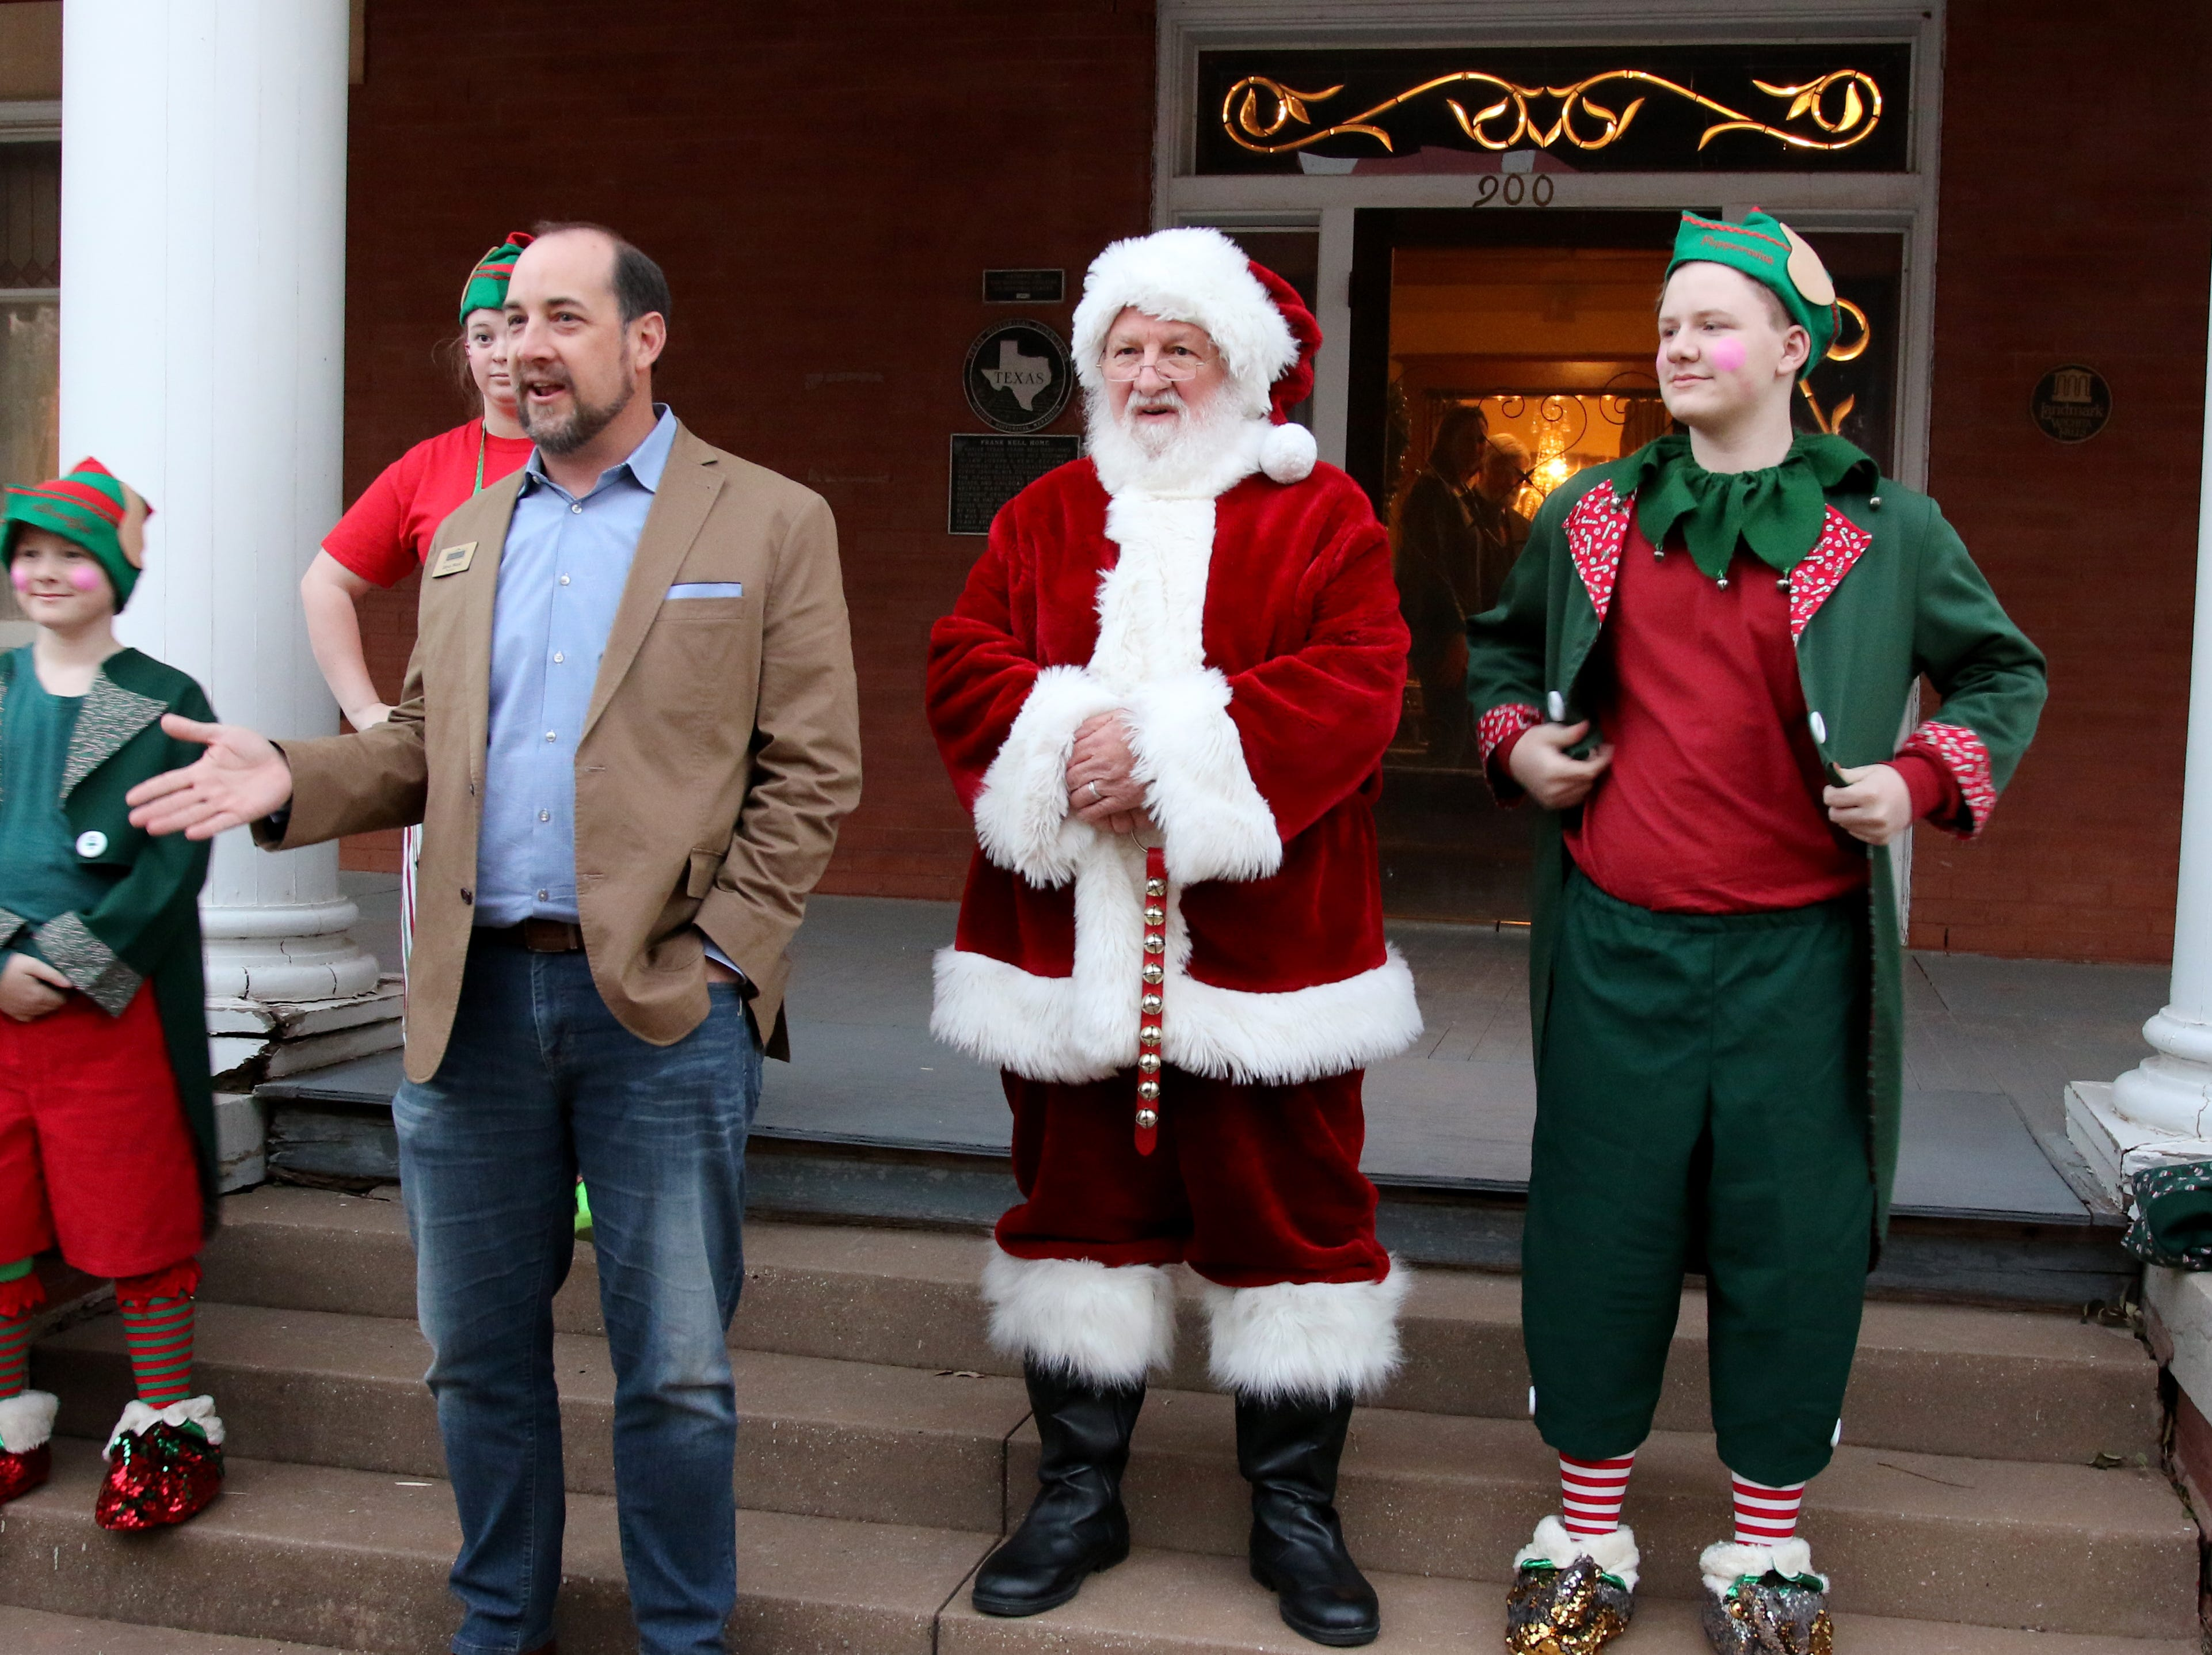 Santa House at the Kell House Museum opened Monday, Nov. 26, 2018, with kids and their families touring part of the museum, drinking hot cocoa and taking photos with Santa.